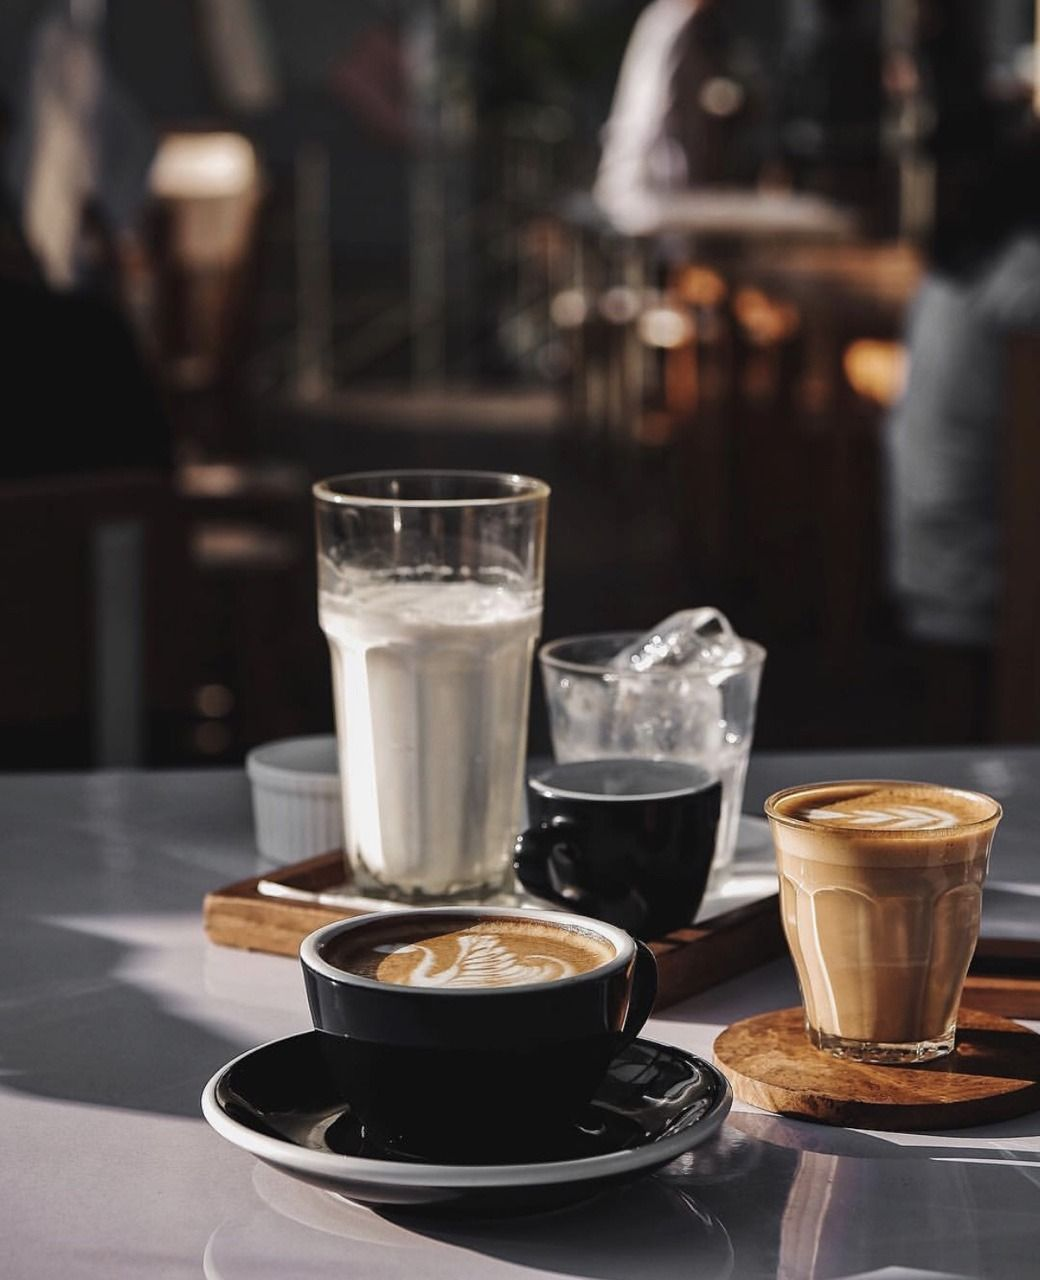 Aesthetic Cafe Wallpapers Wallpaper Cave